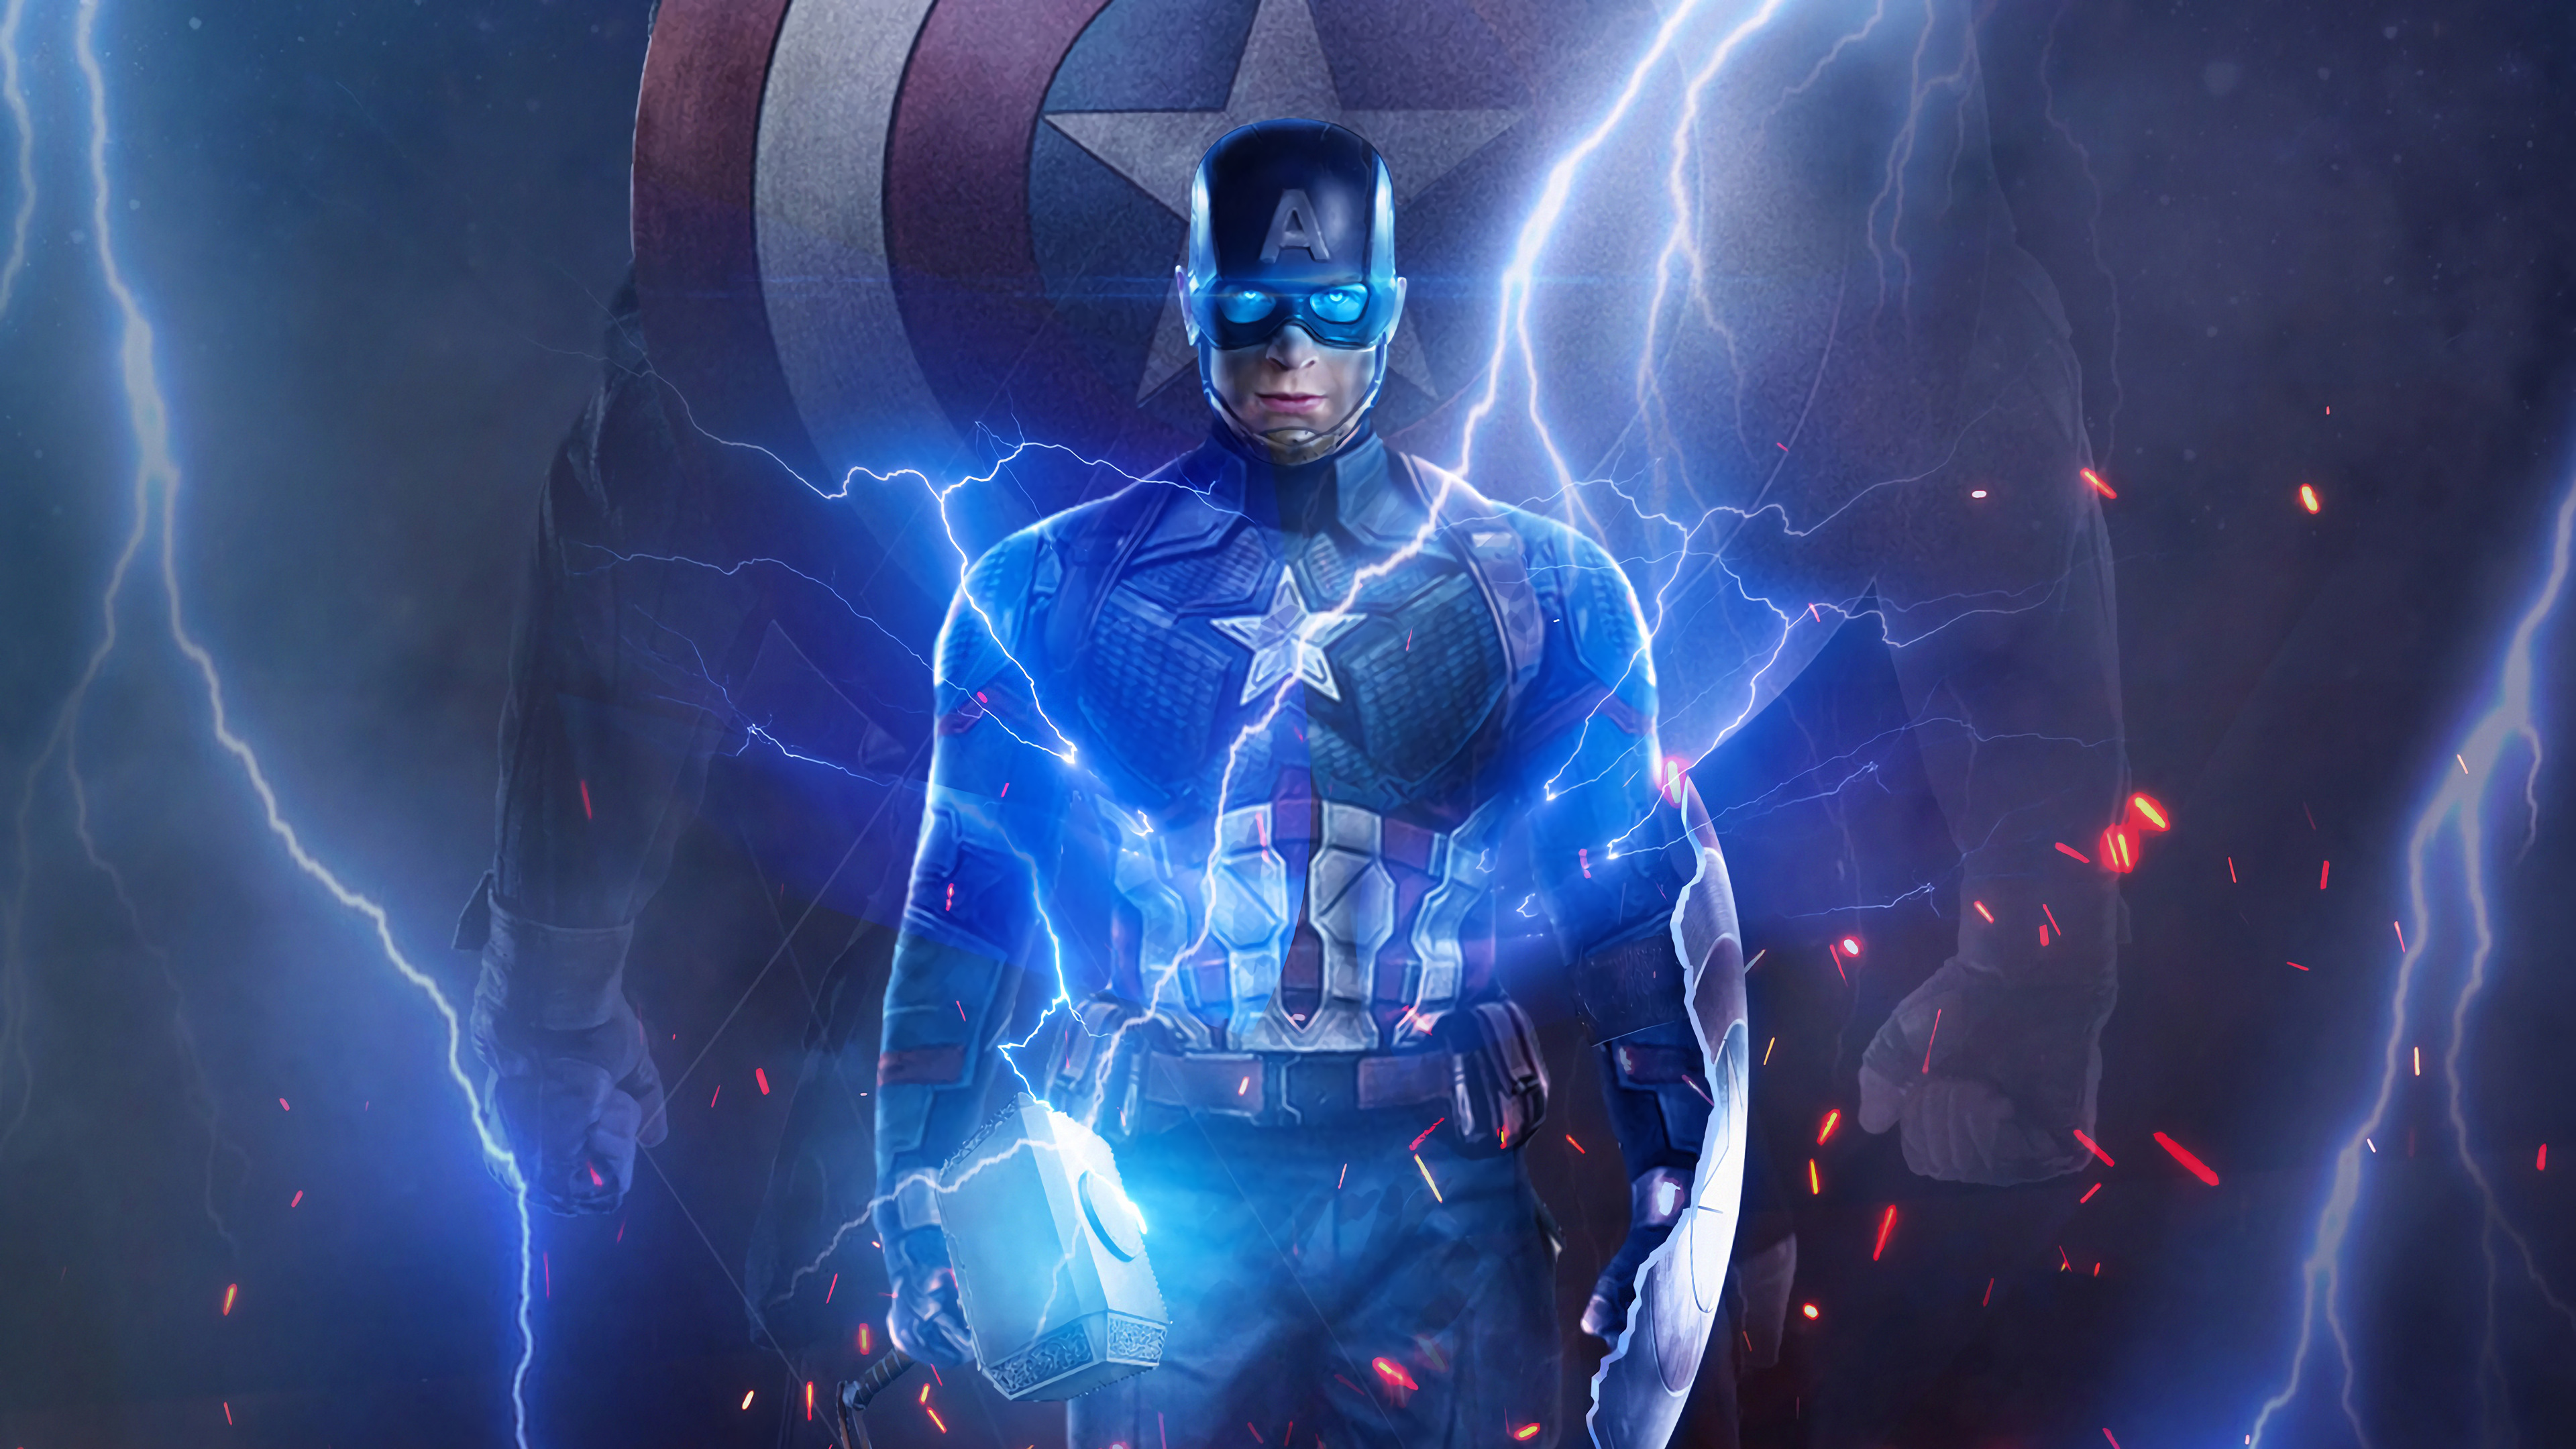 Wallpaper Captain America with Thor's hammer